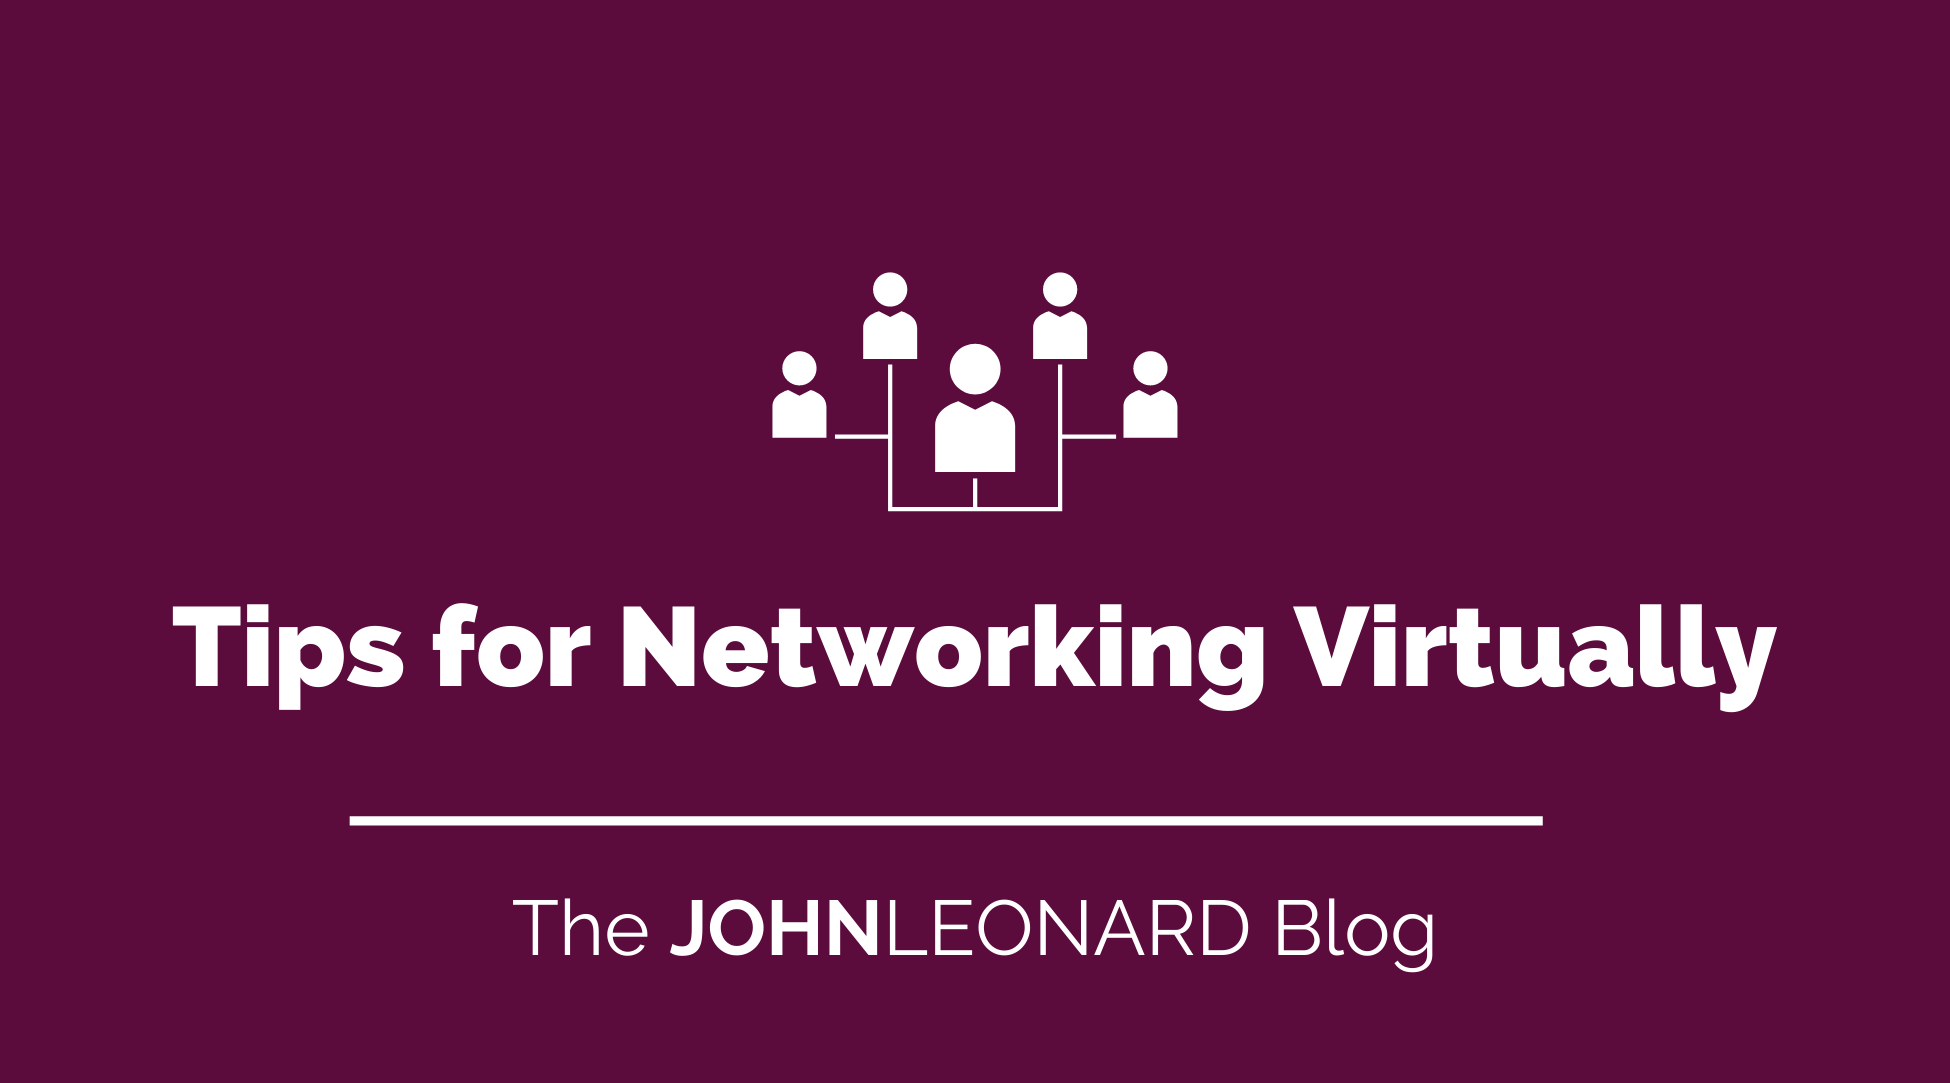 Tips for Networking Virtually